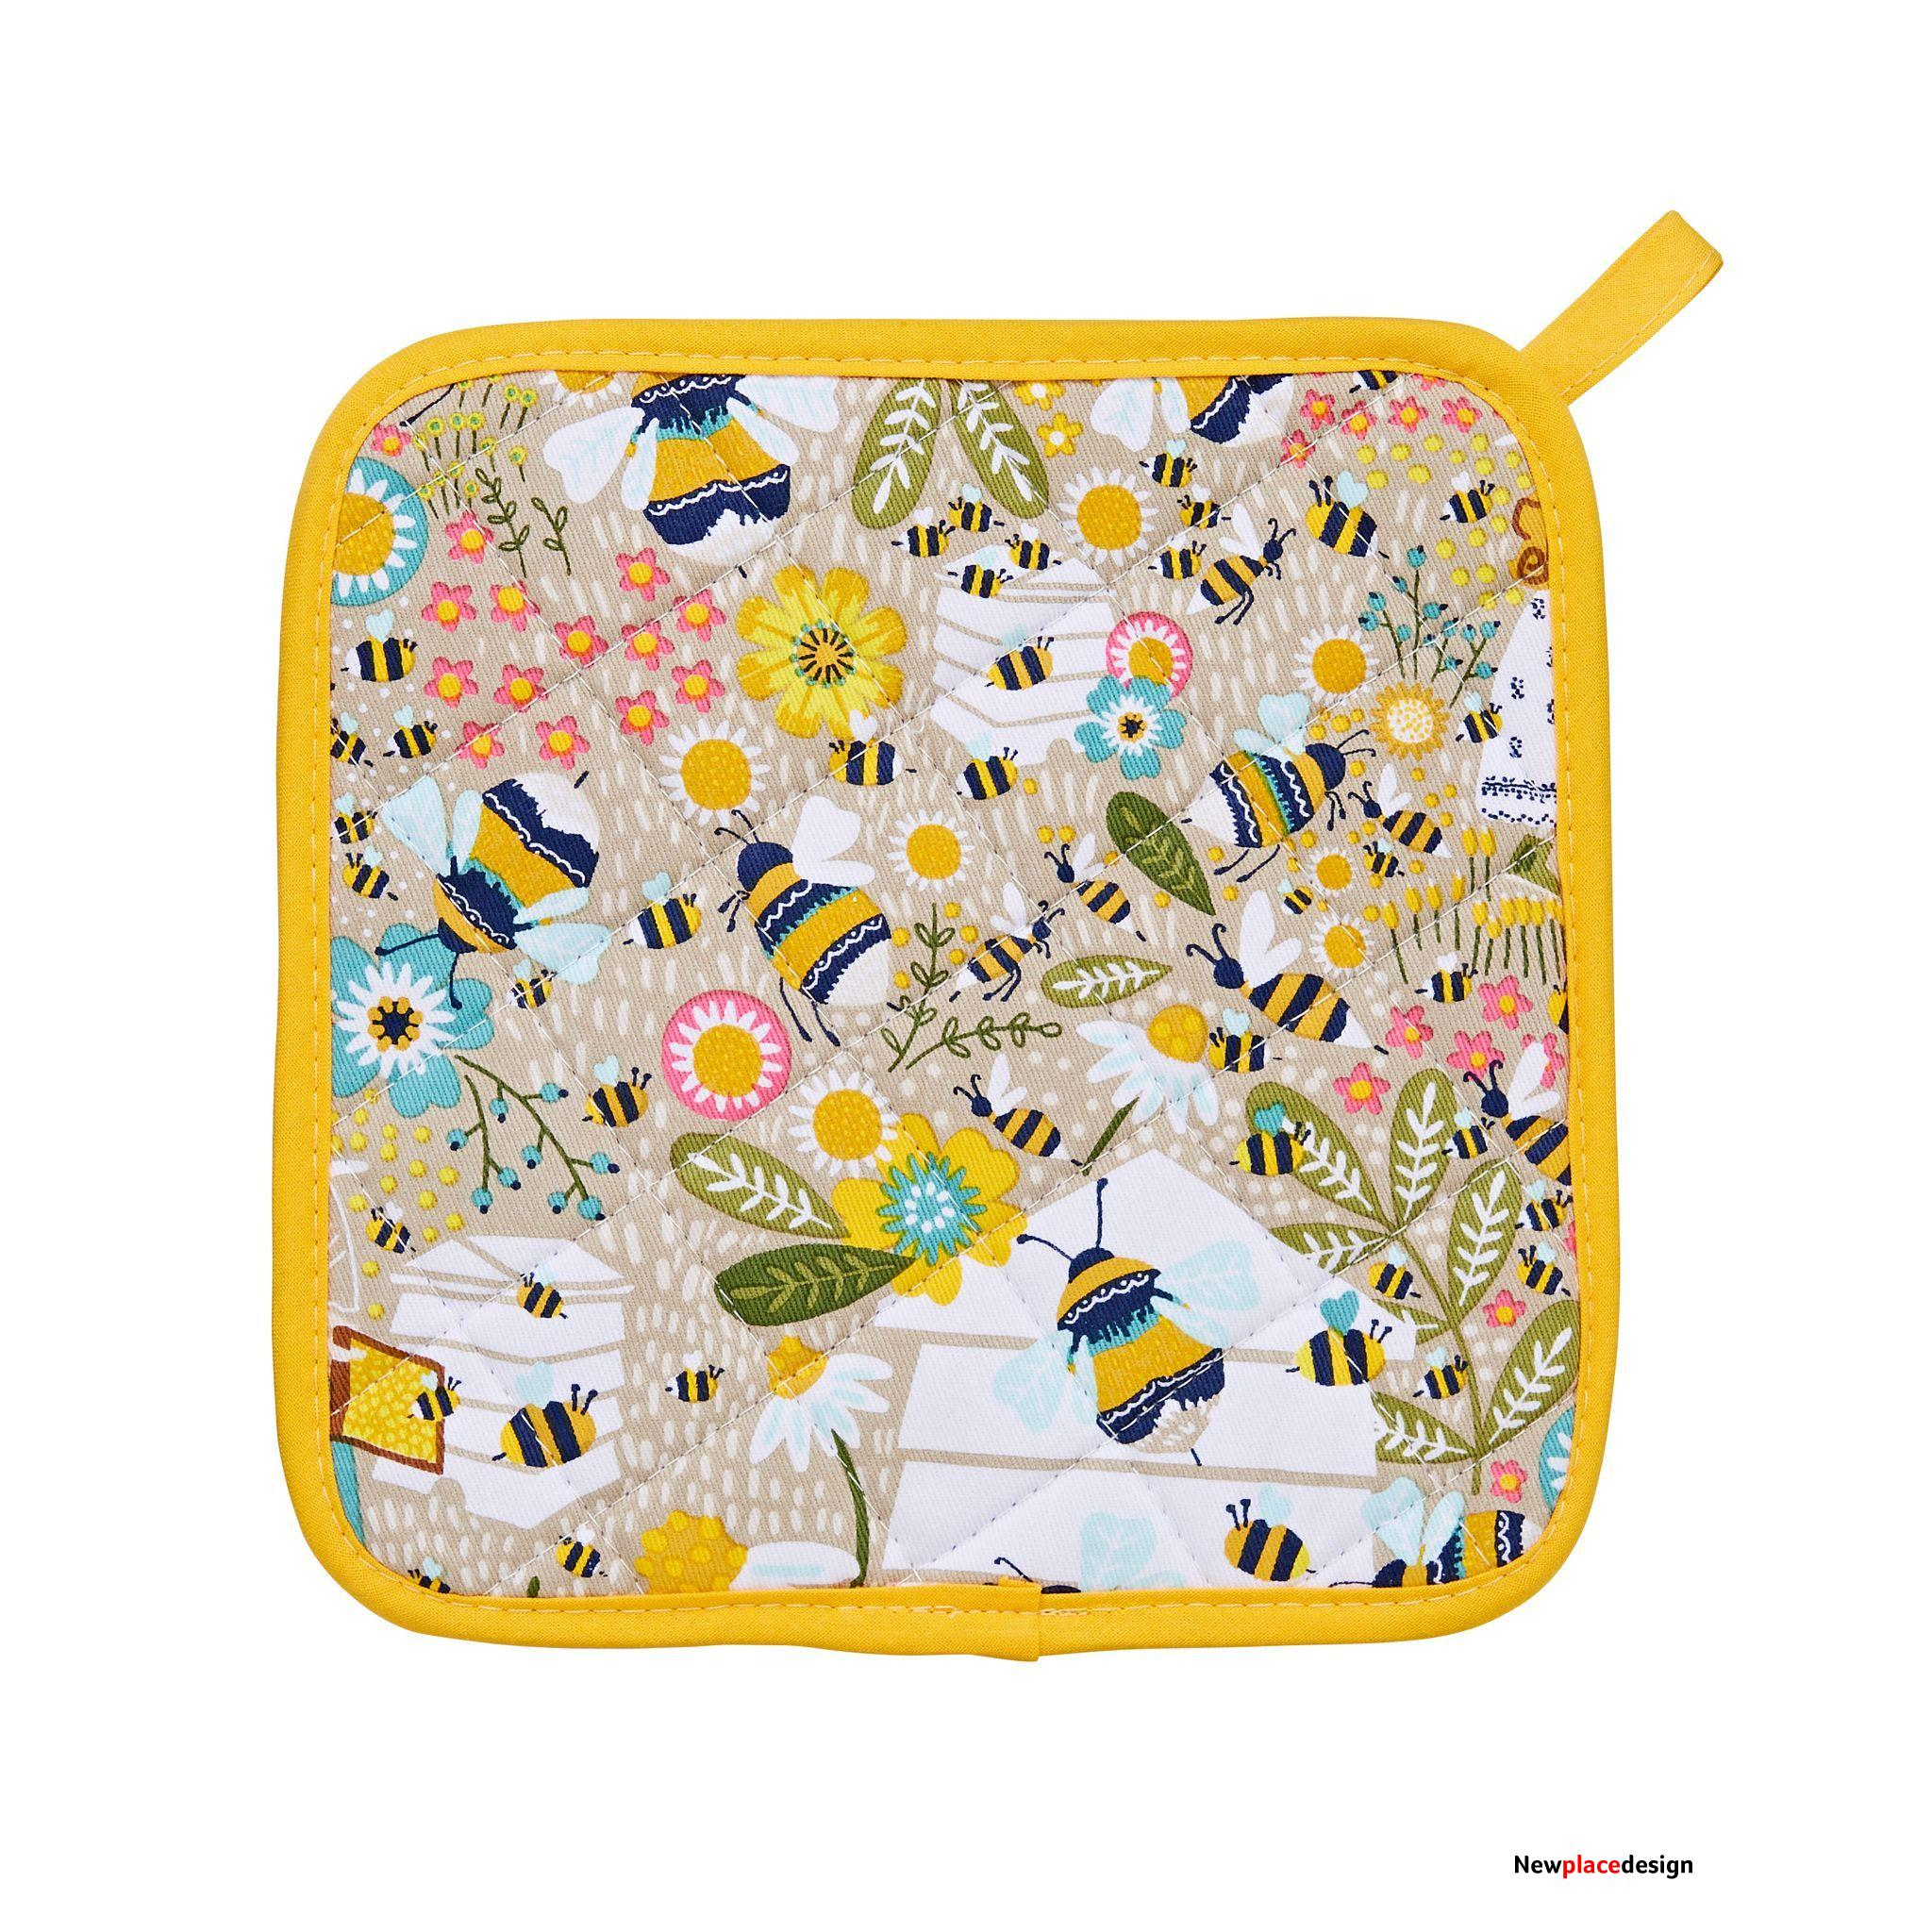 Ulster Weavers Heat Resistant Pot Mat - Bee Keeper (100% Cotton Outer; 100% Polyester wadding; CE marked, Yellow)